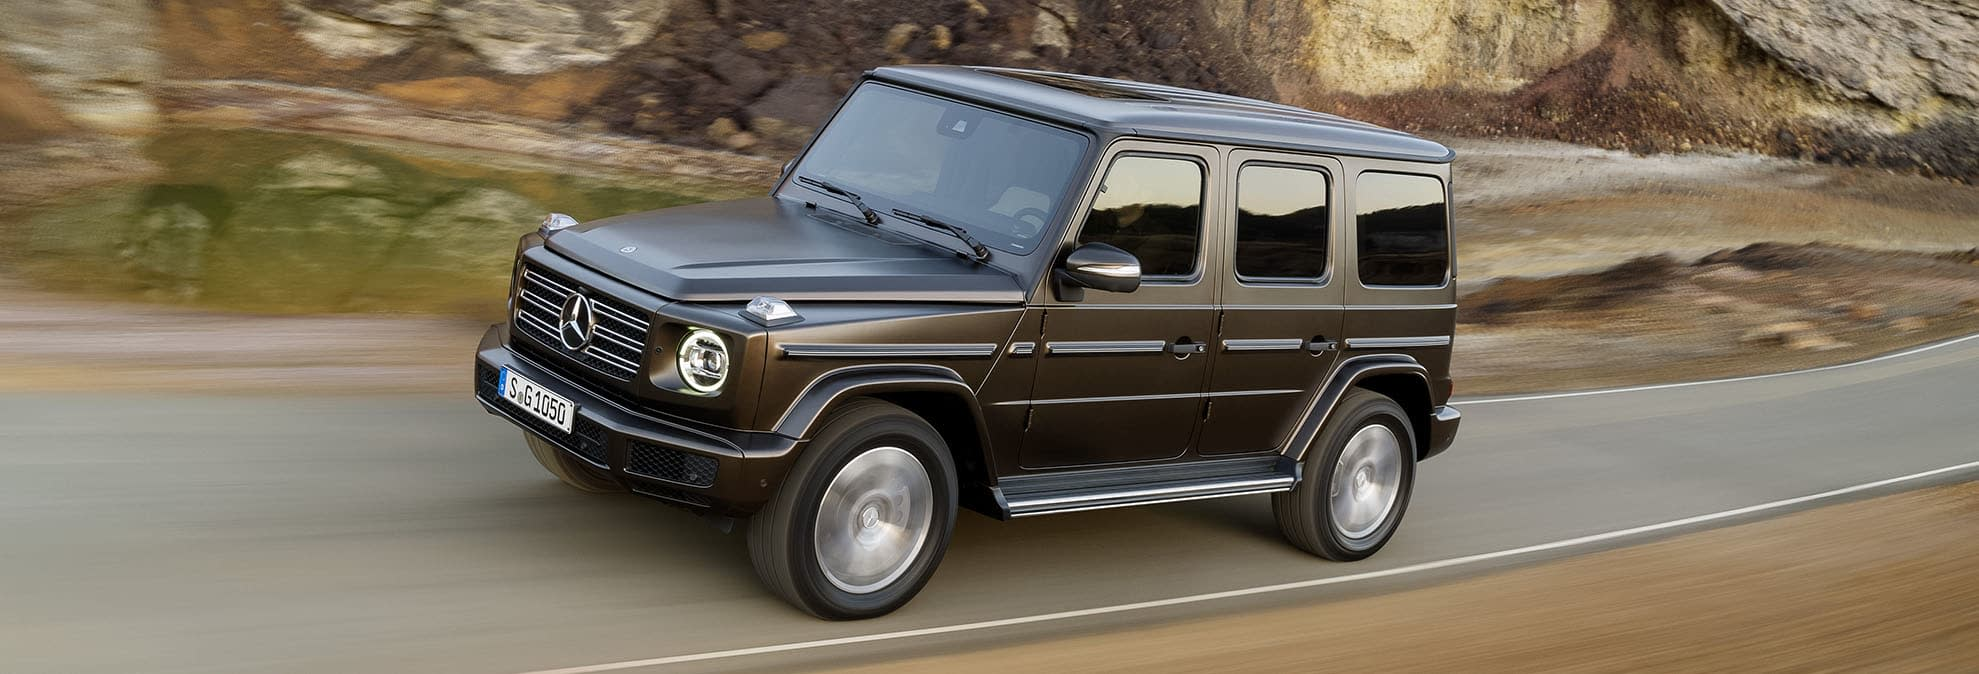 2019 Mercedes-Benz G-Class Is Bigger and Modernized but Keeps Its